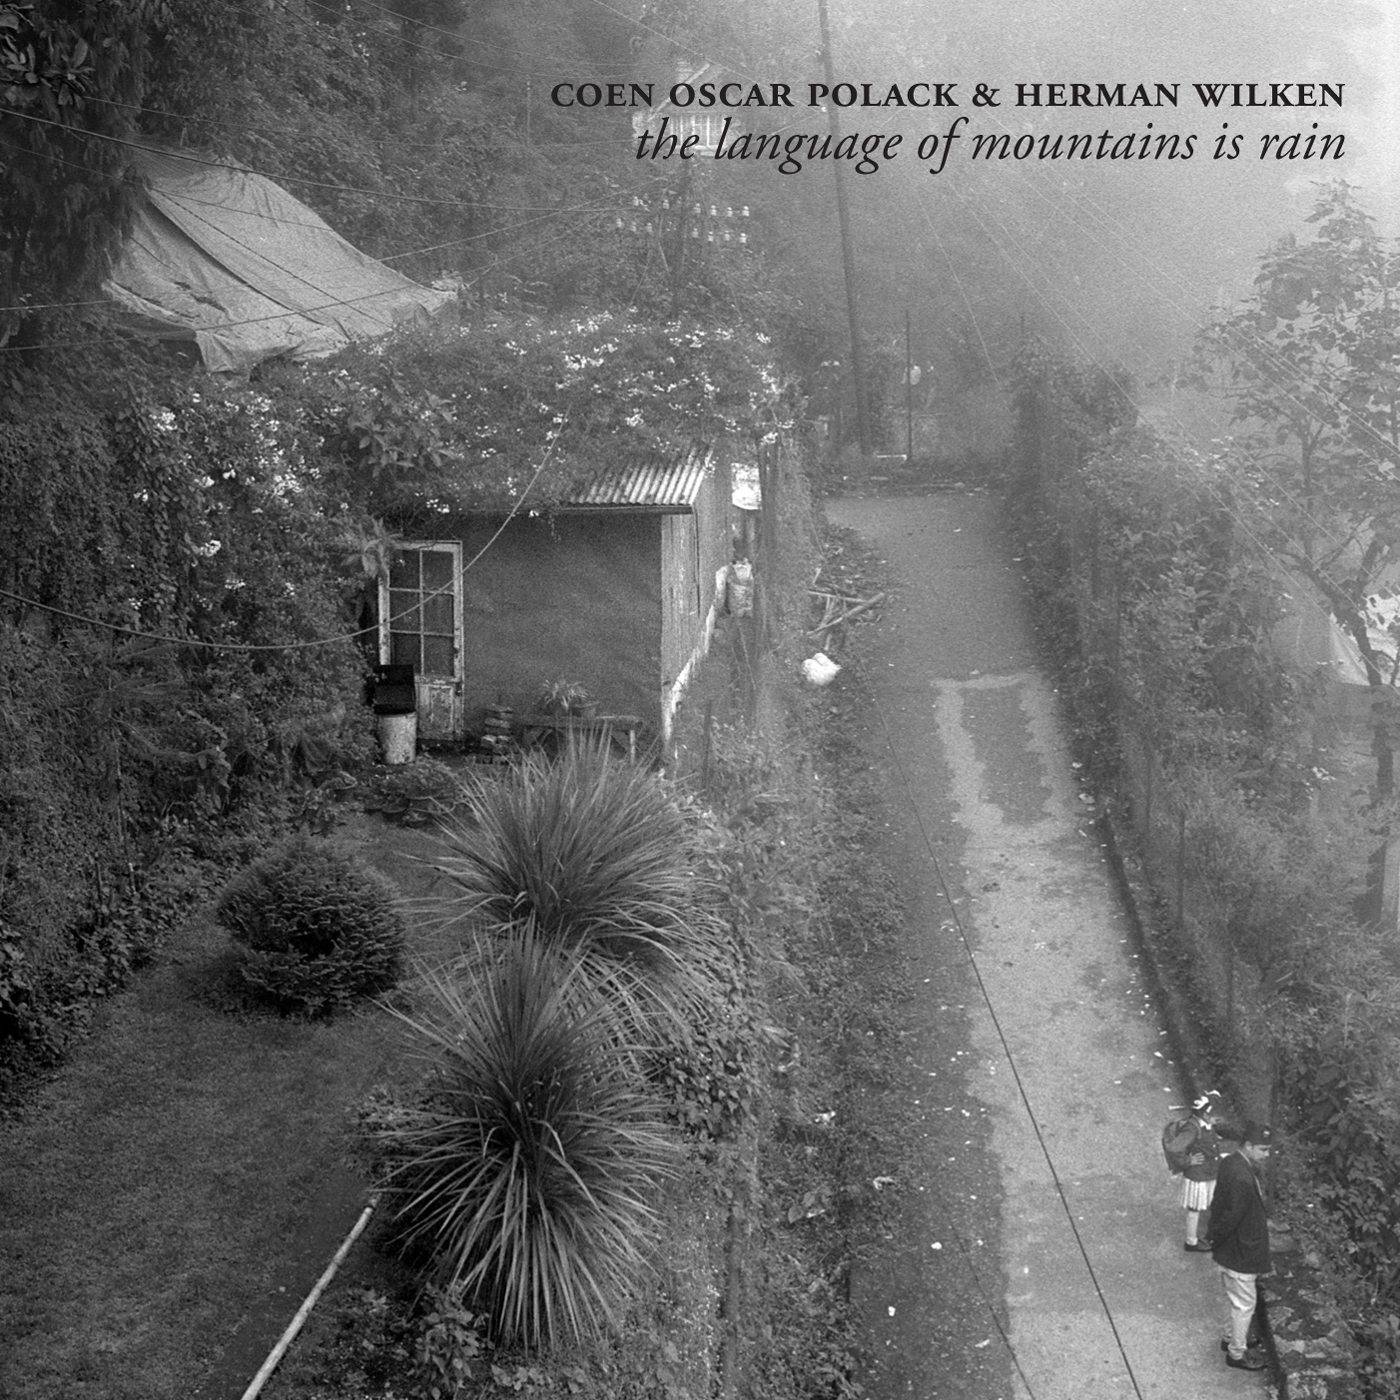 NM031: coen oscar polack & herman wilken - the language of mountains is rain